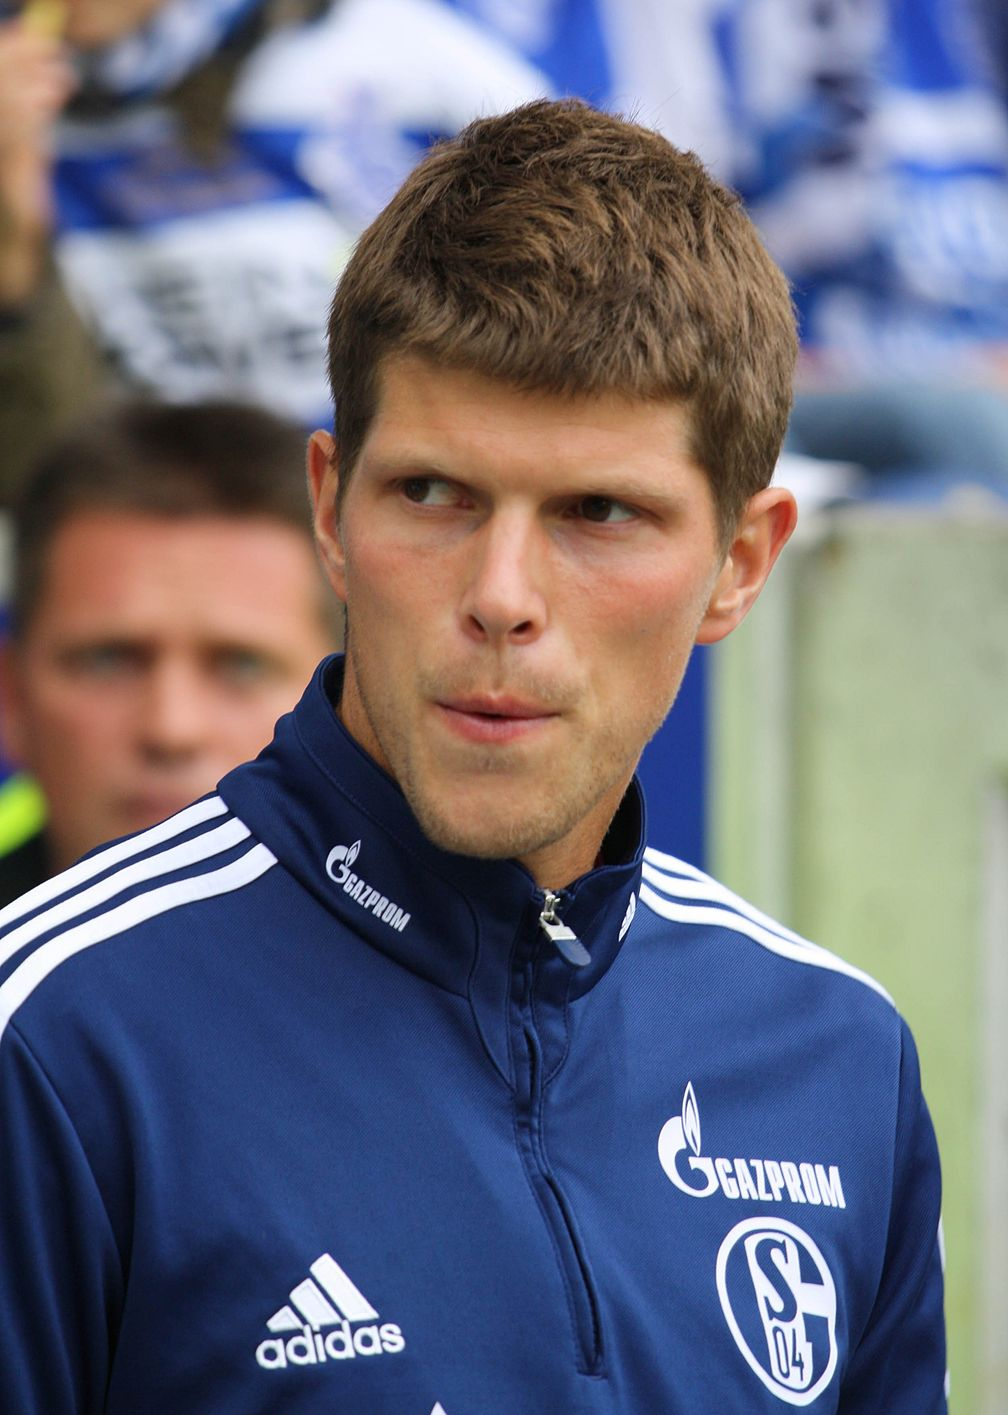 Klaas-Jan Huntelaar (2011)